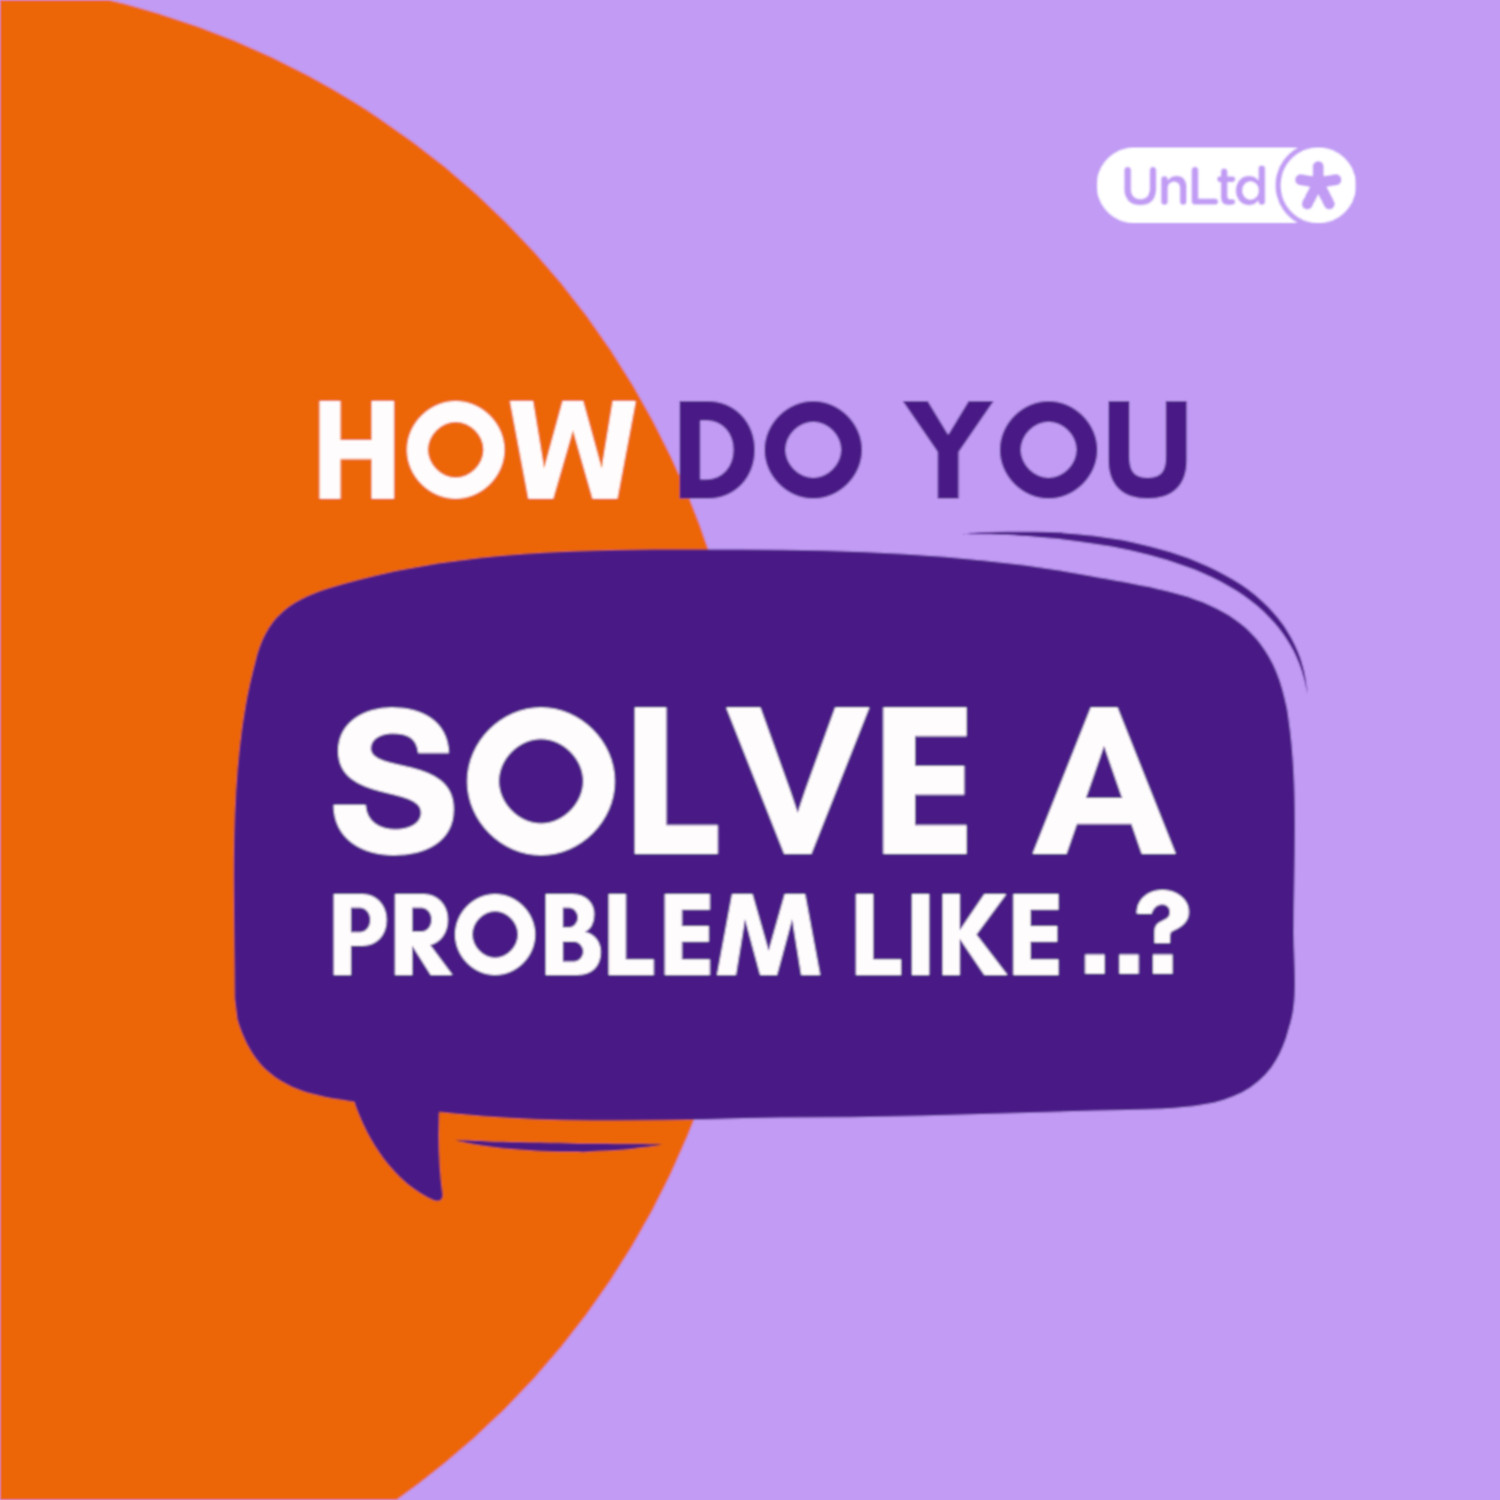 How Do You Solve A Problem Like..?